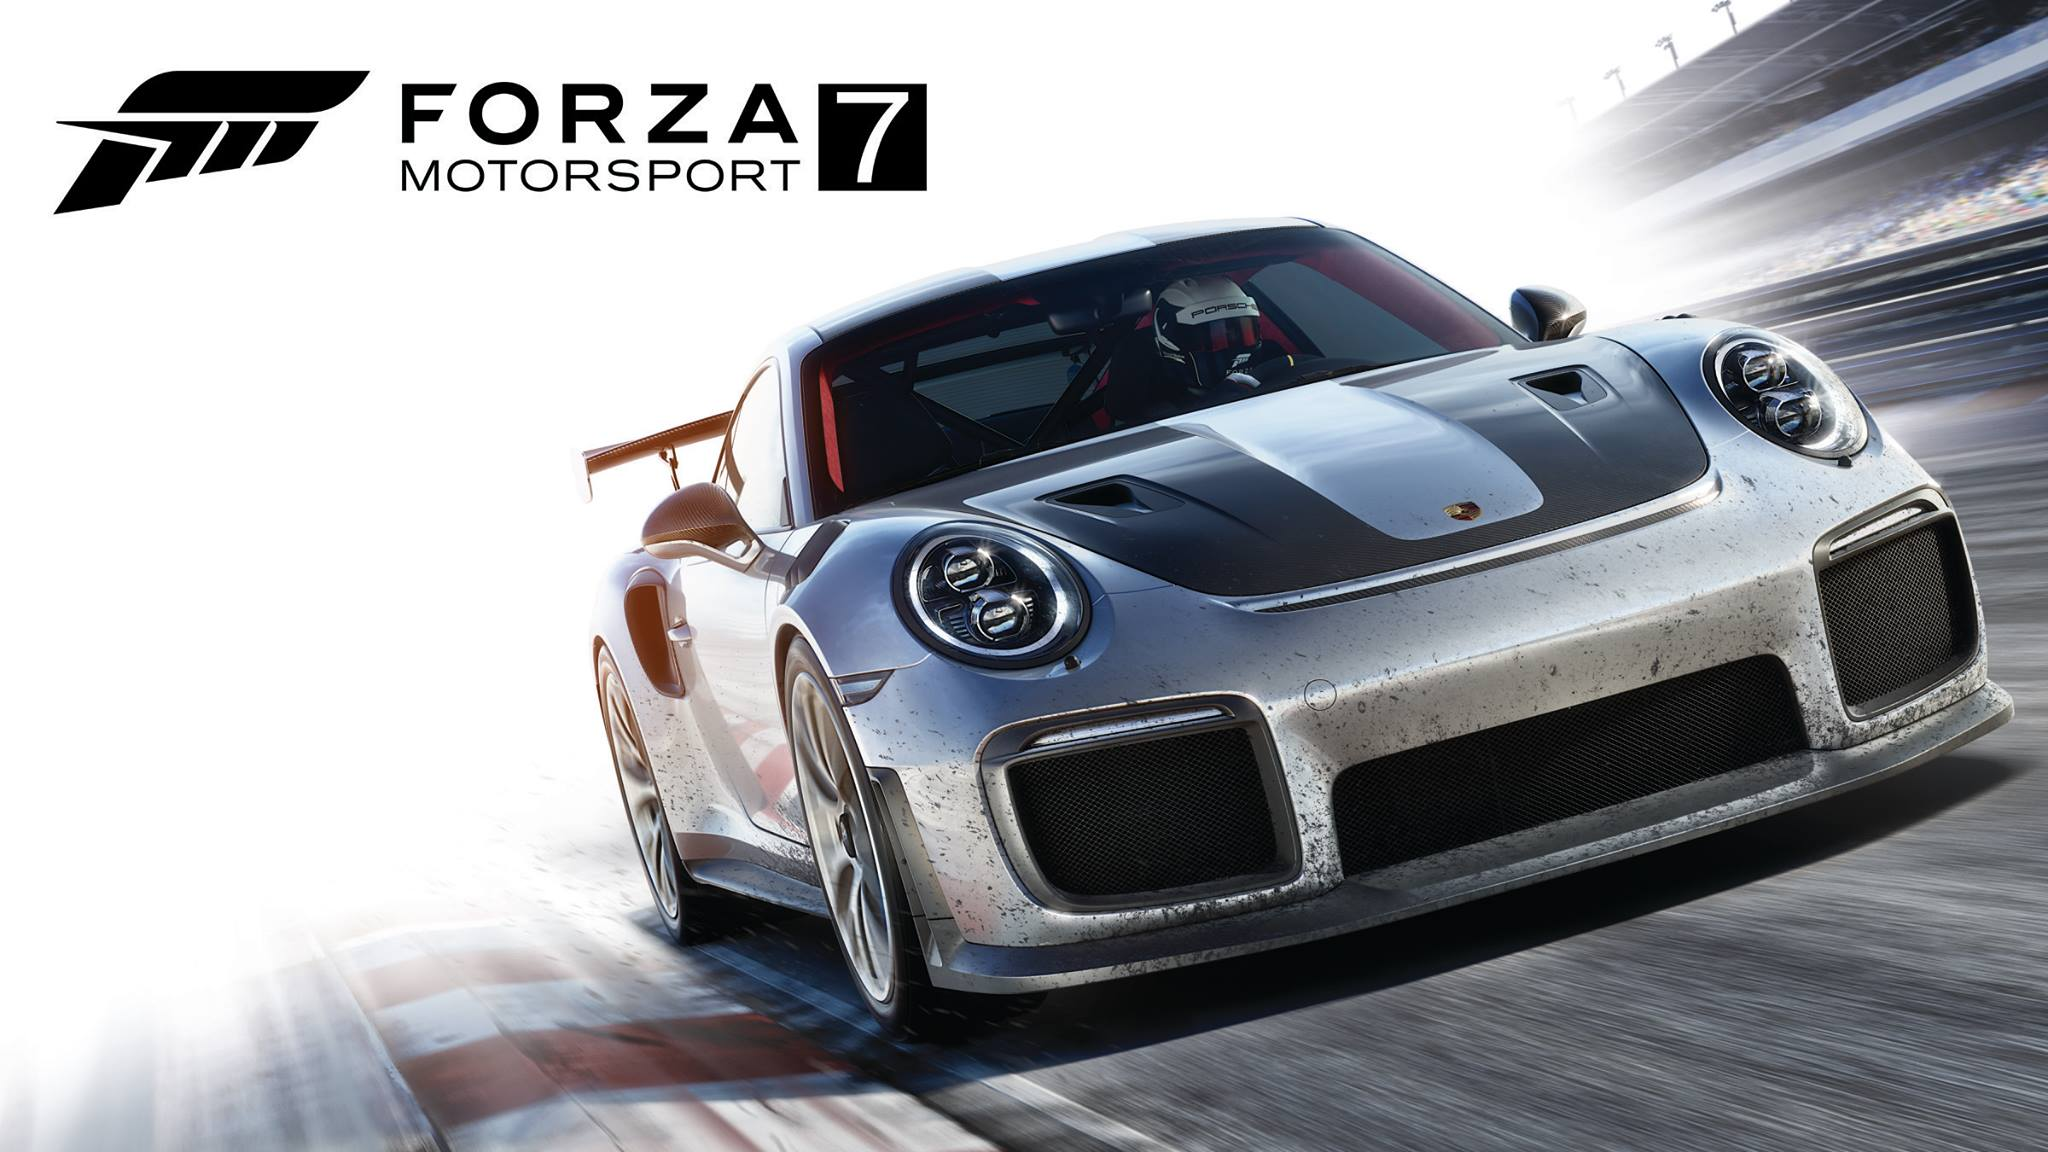 Forza Motorsport 7 unveiled; available from 3rd October 2017